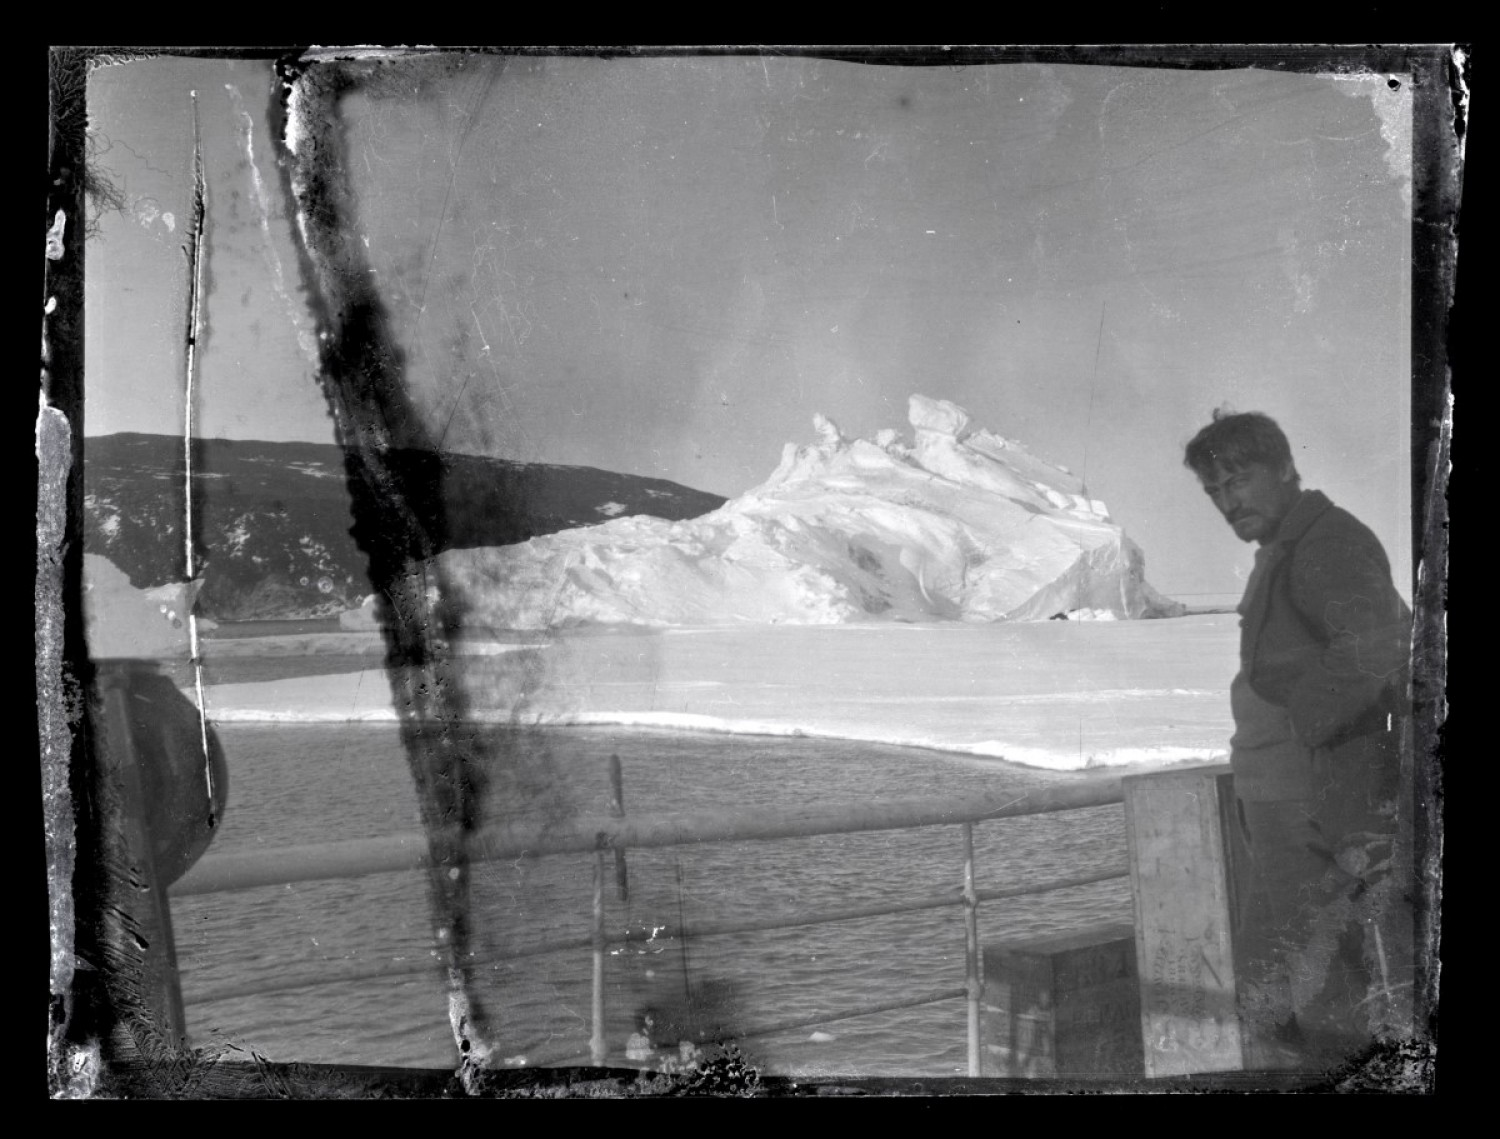 Ross Island, Antarctica. Alexander Stevens, chief scientist and geologist looks south. Hut Point Peninsula in the background